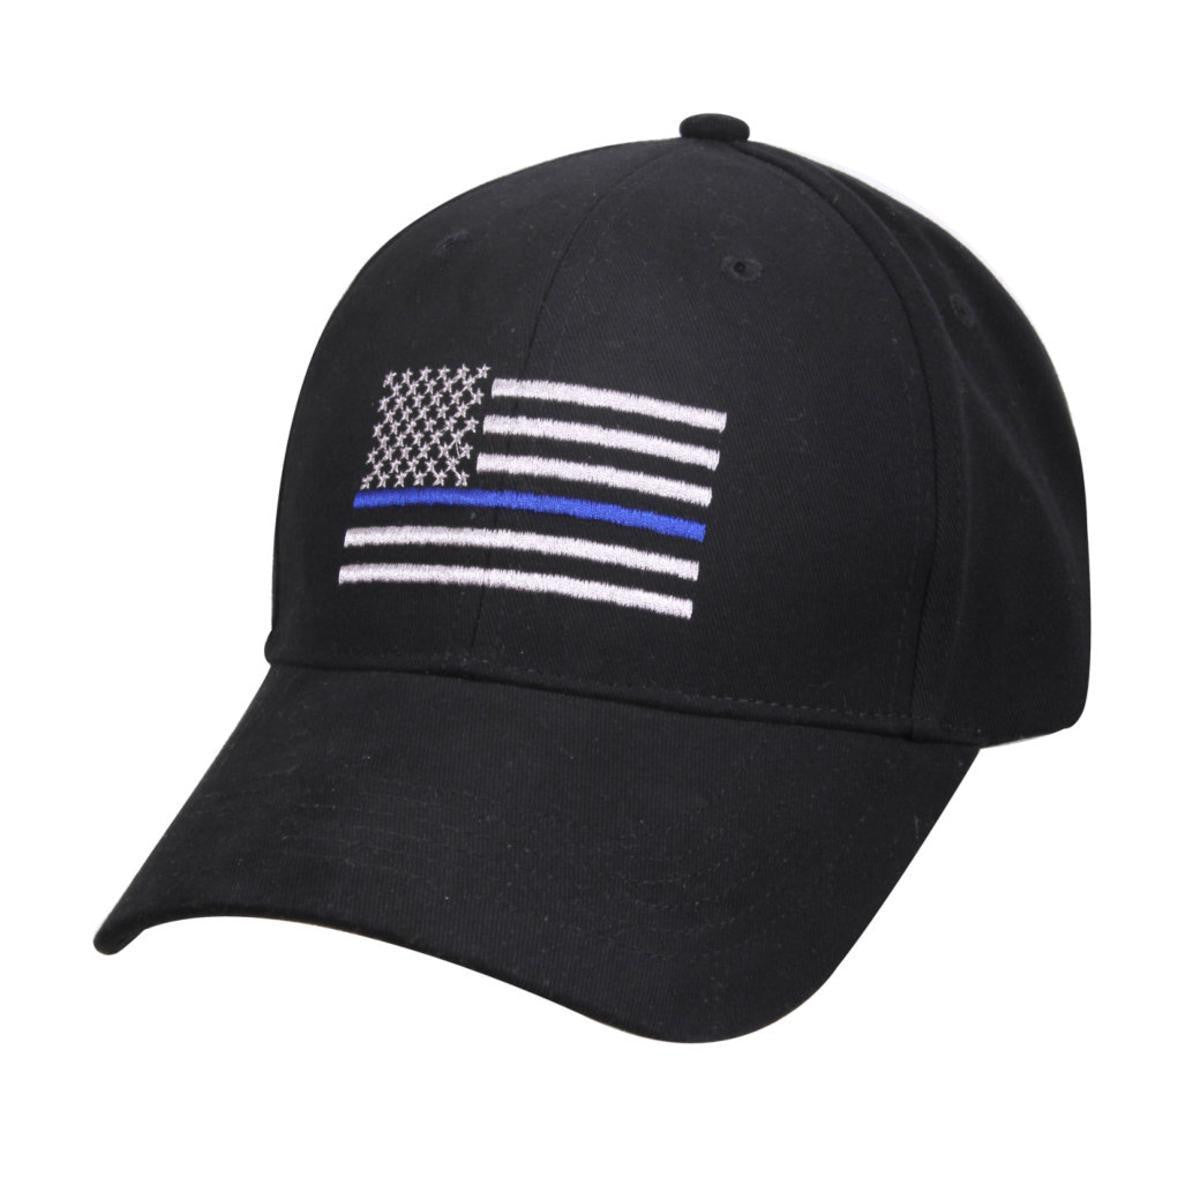 FREE Thin Blue Line Hat